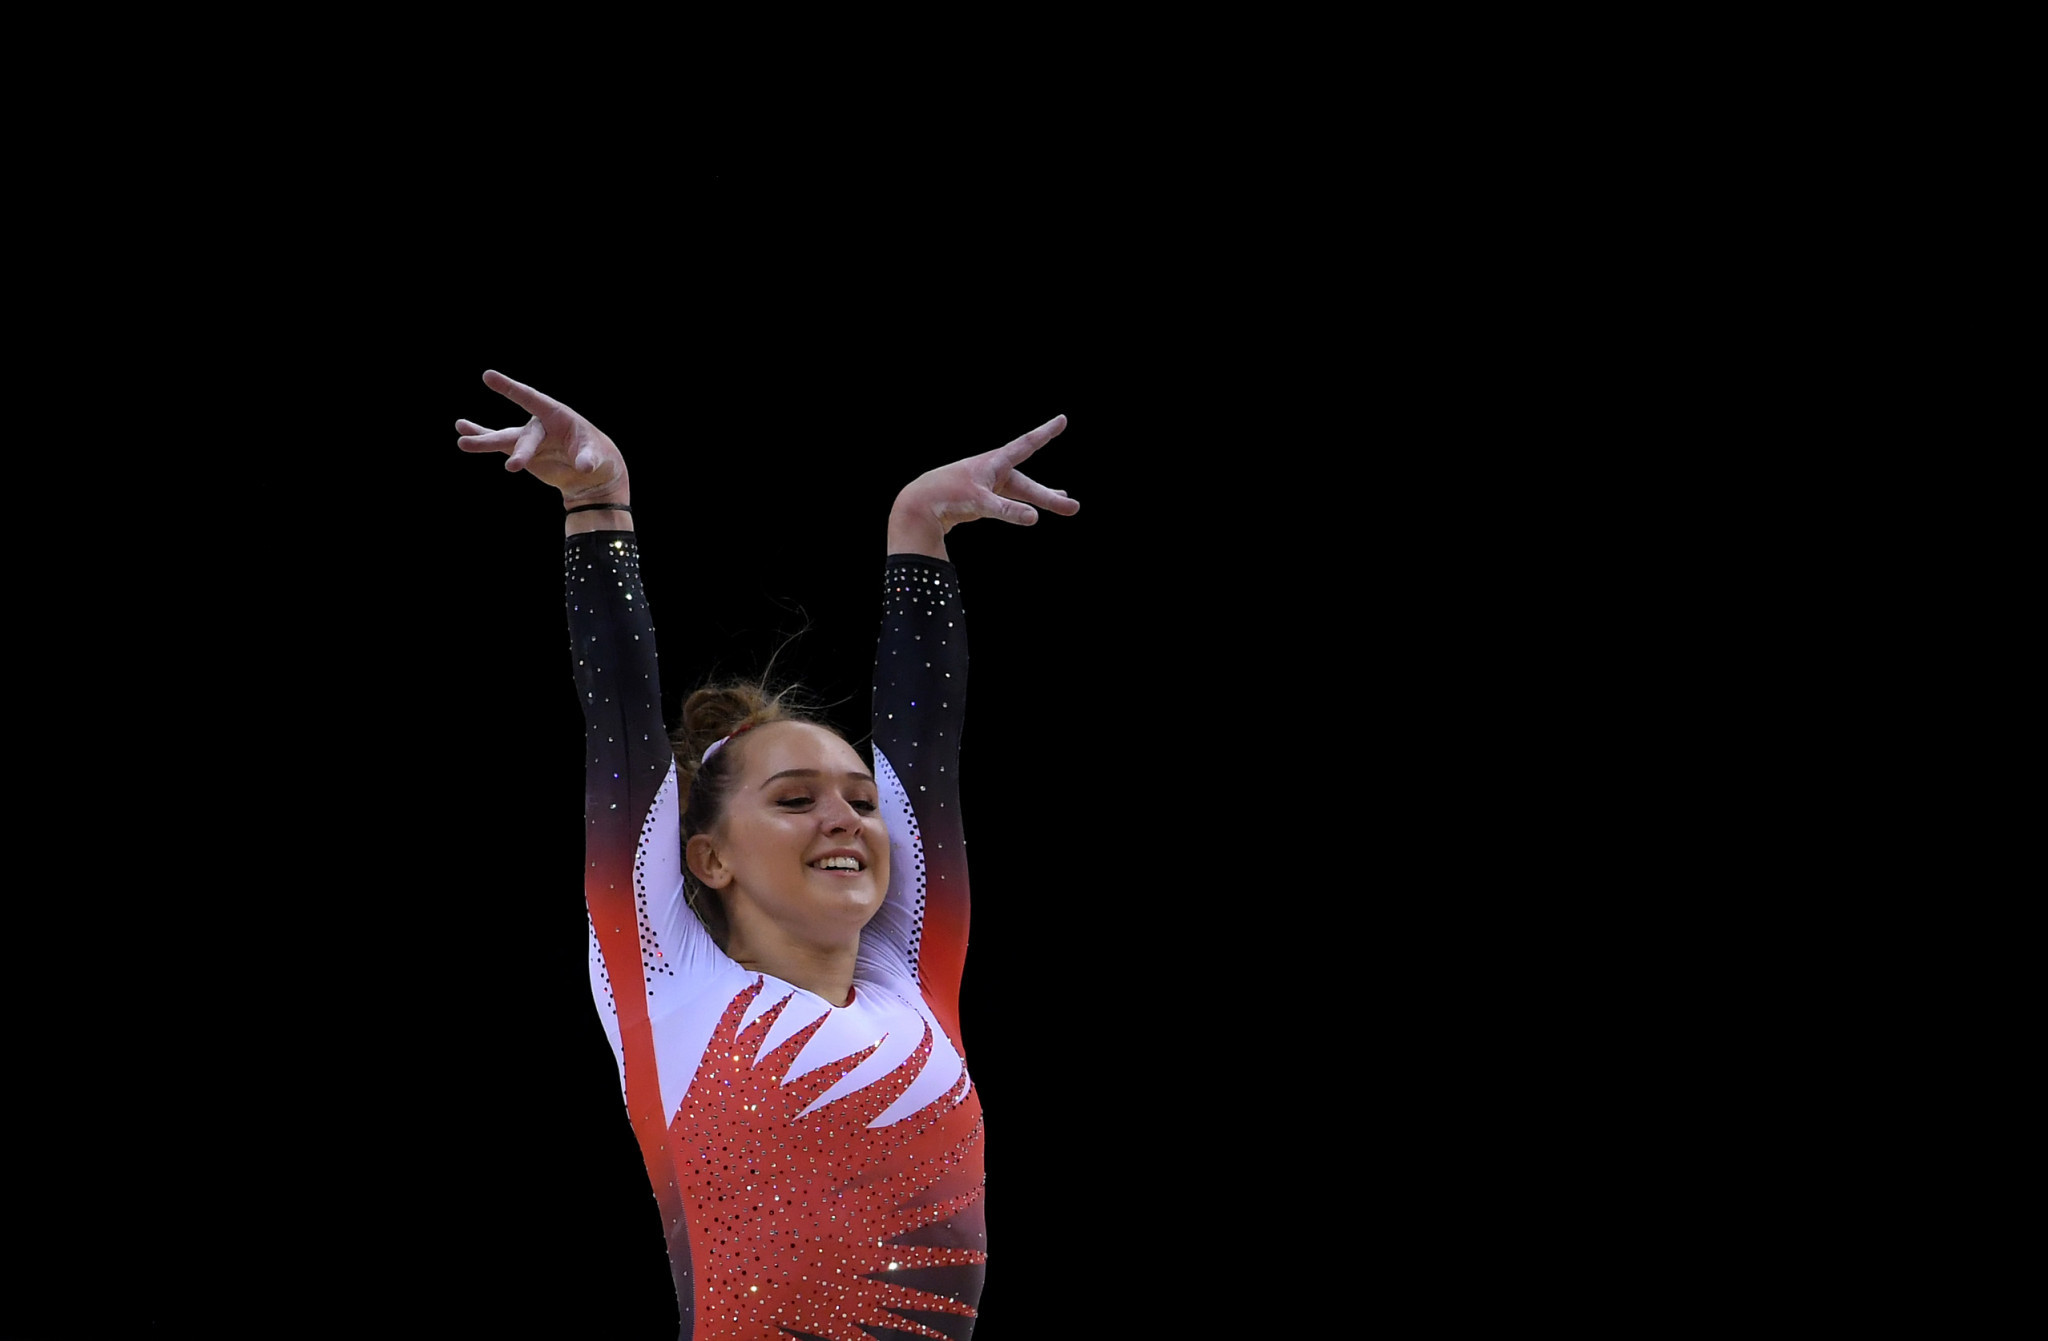 Tinkler critical of time taken by British Gymnastics to conclude complaint process